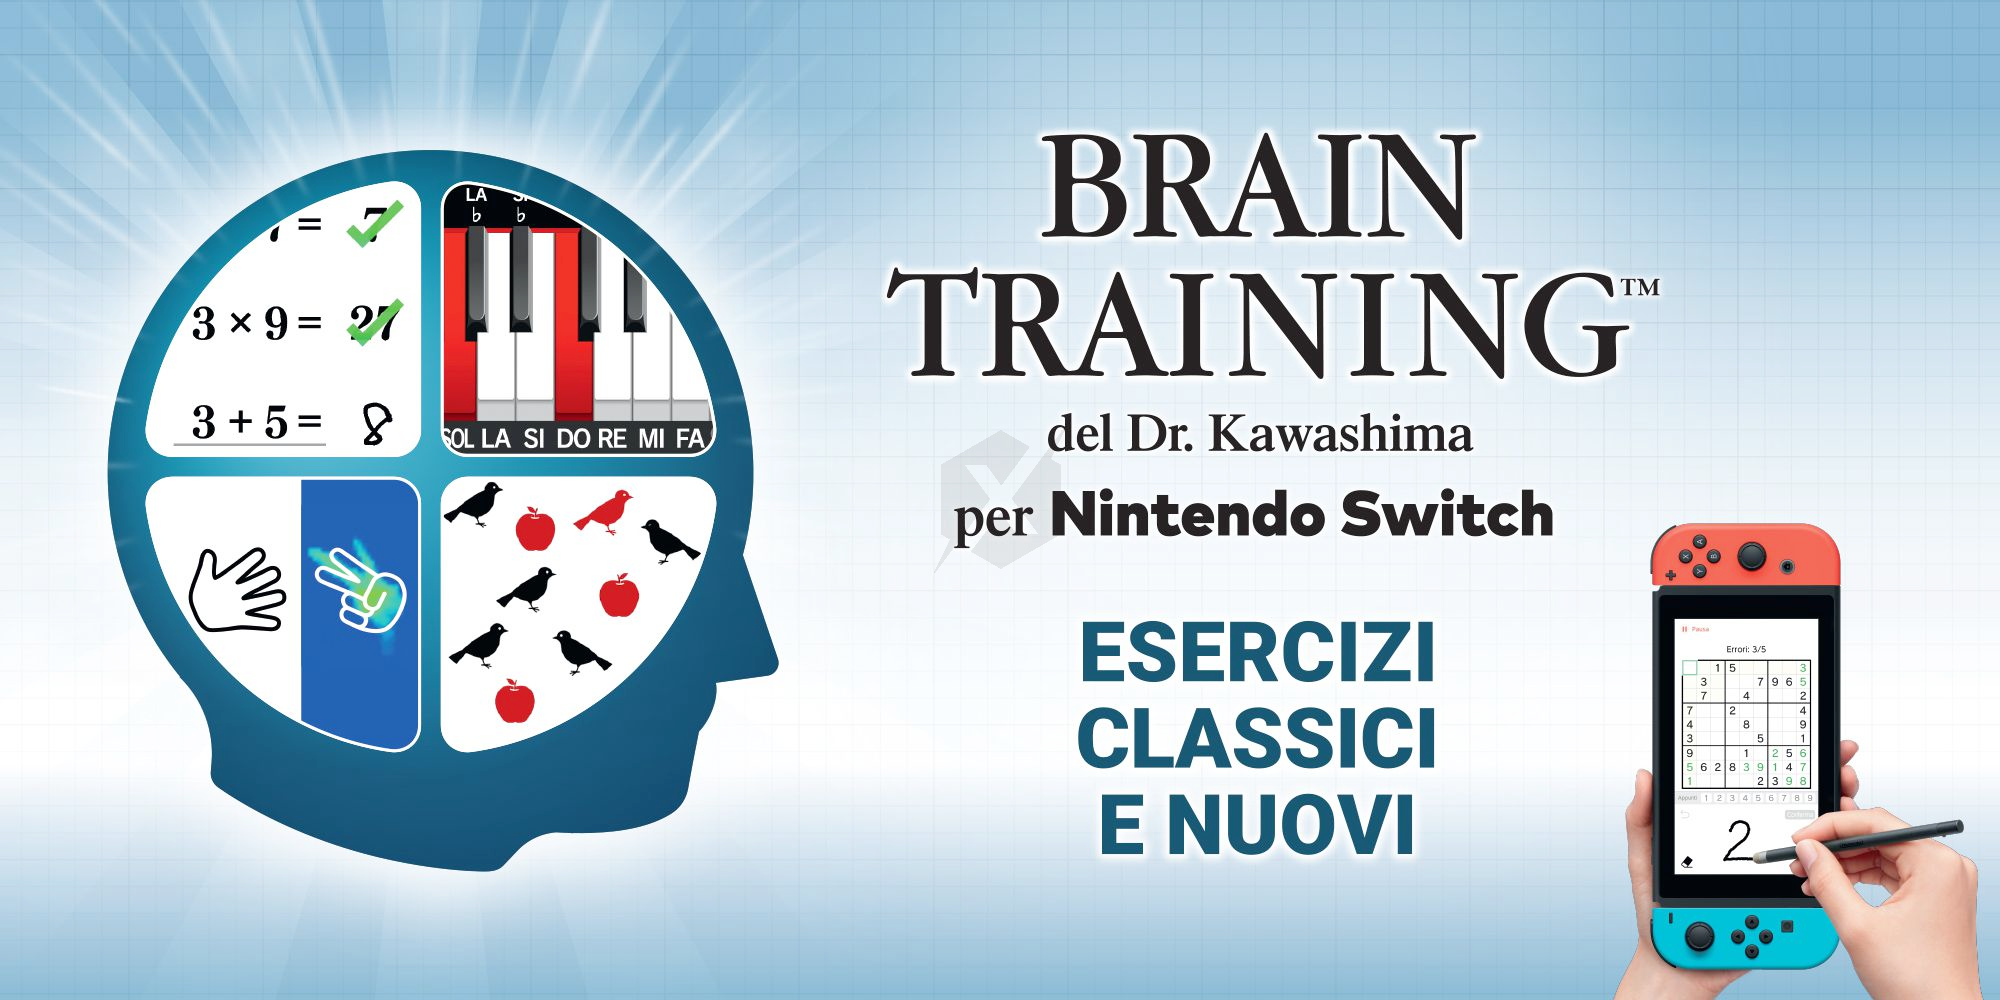 Brain Training of Dr. Kawashima is out today on Nintendo